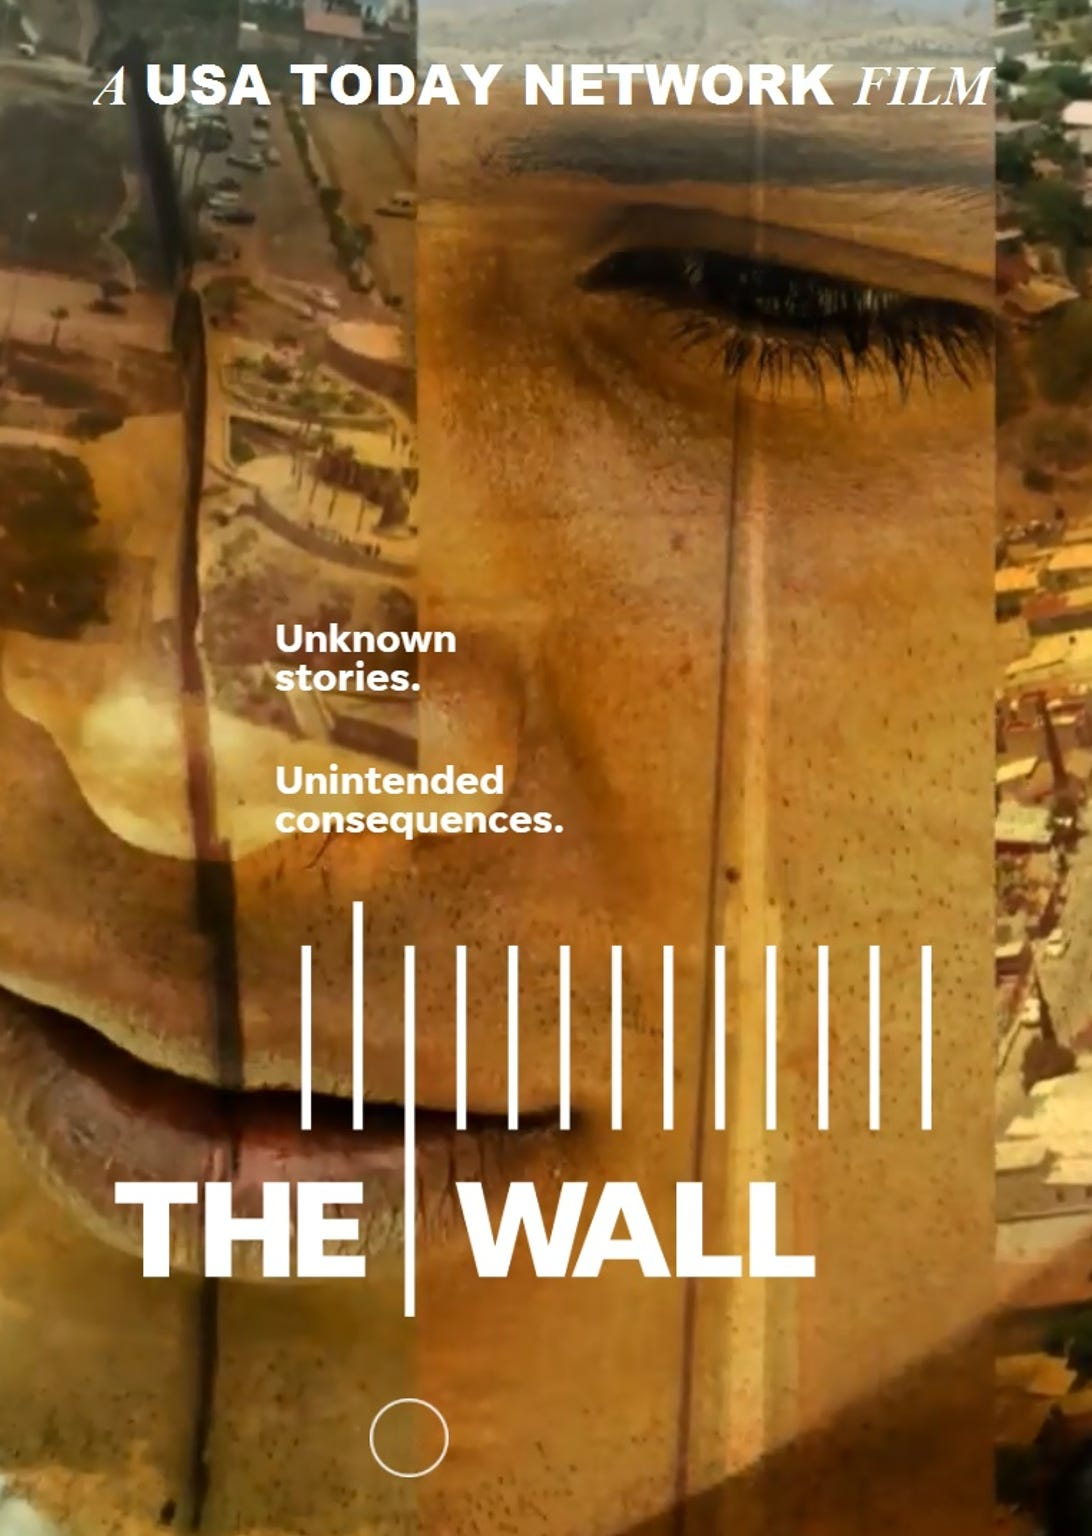 "The Corpus Christi Caller-Times will host a screening of the ""The Wall,"" a USA TODAY Network film, on Wednesday, Nov. 14 at Alamo Drafthouse."